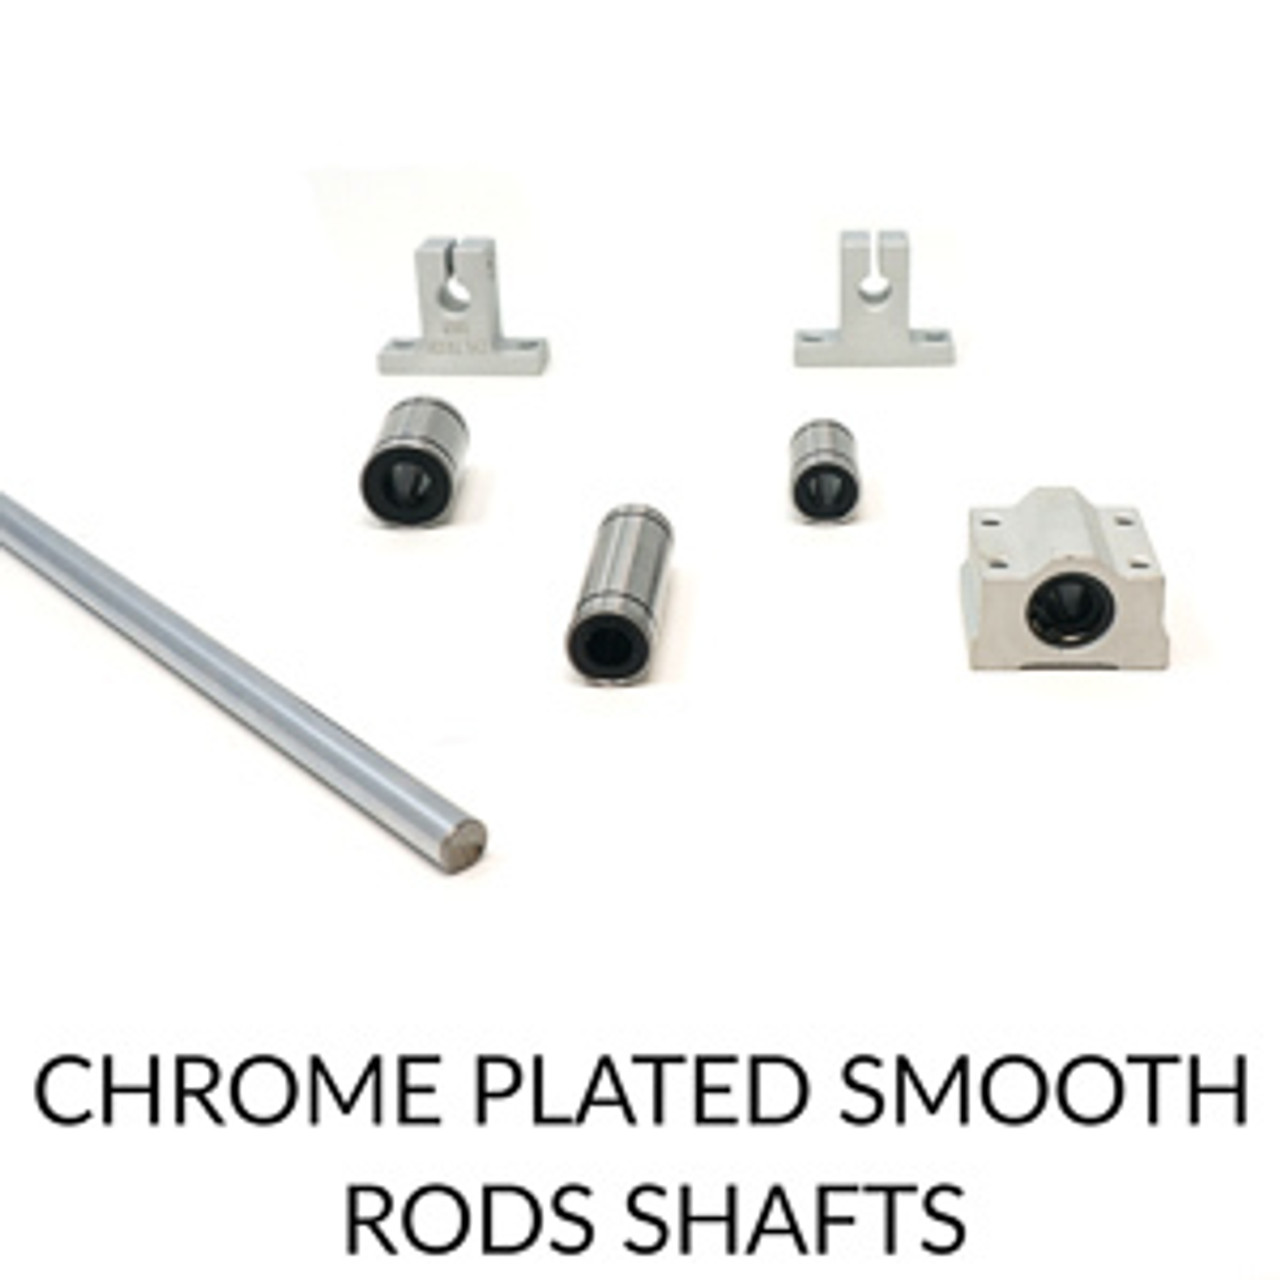 Chrome Plated Smooth Rods Shafts